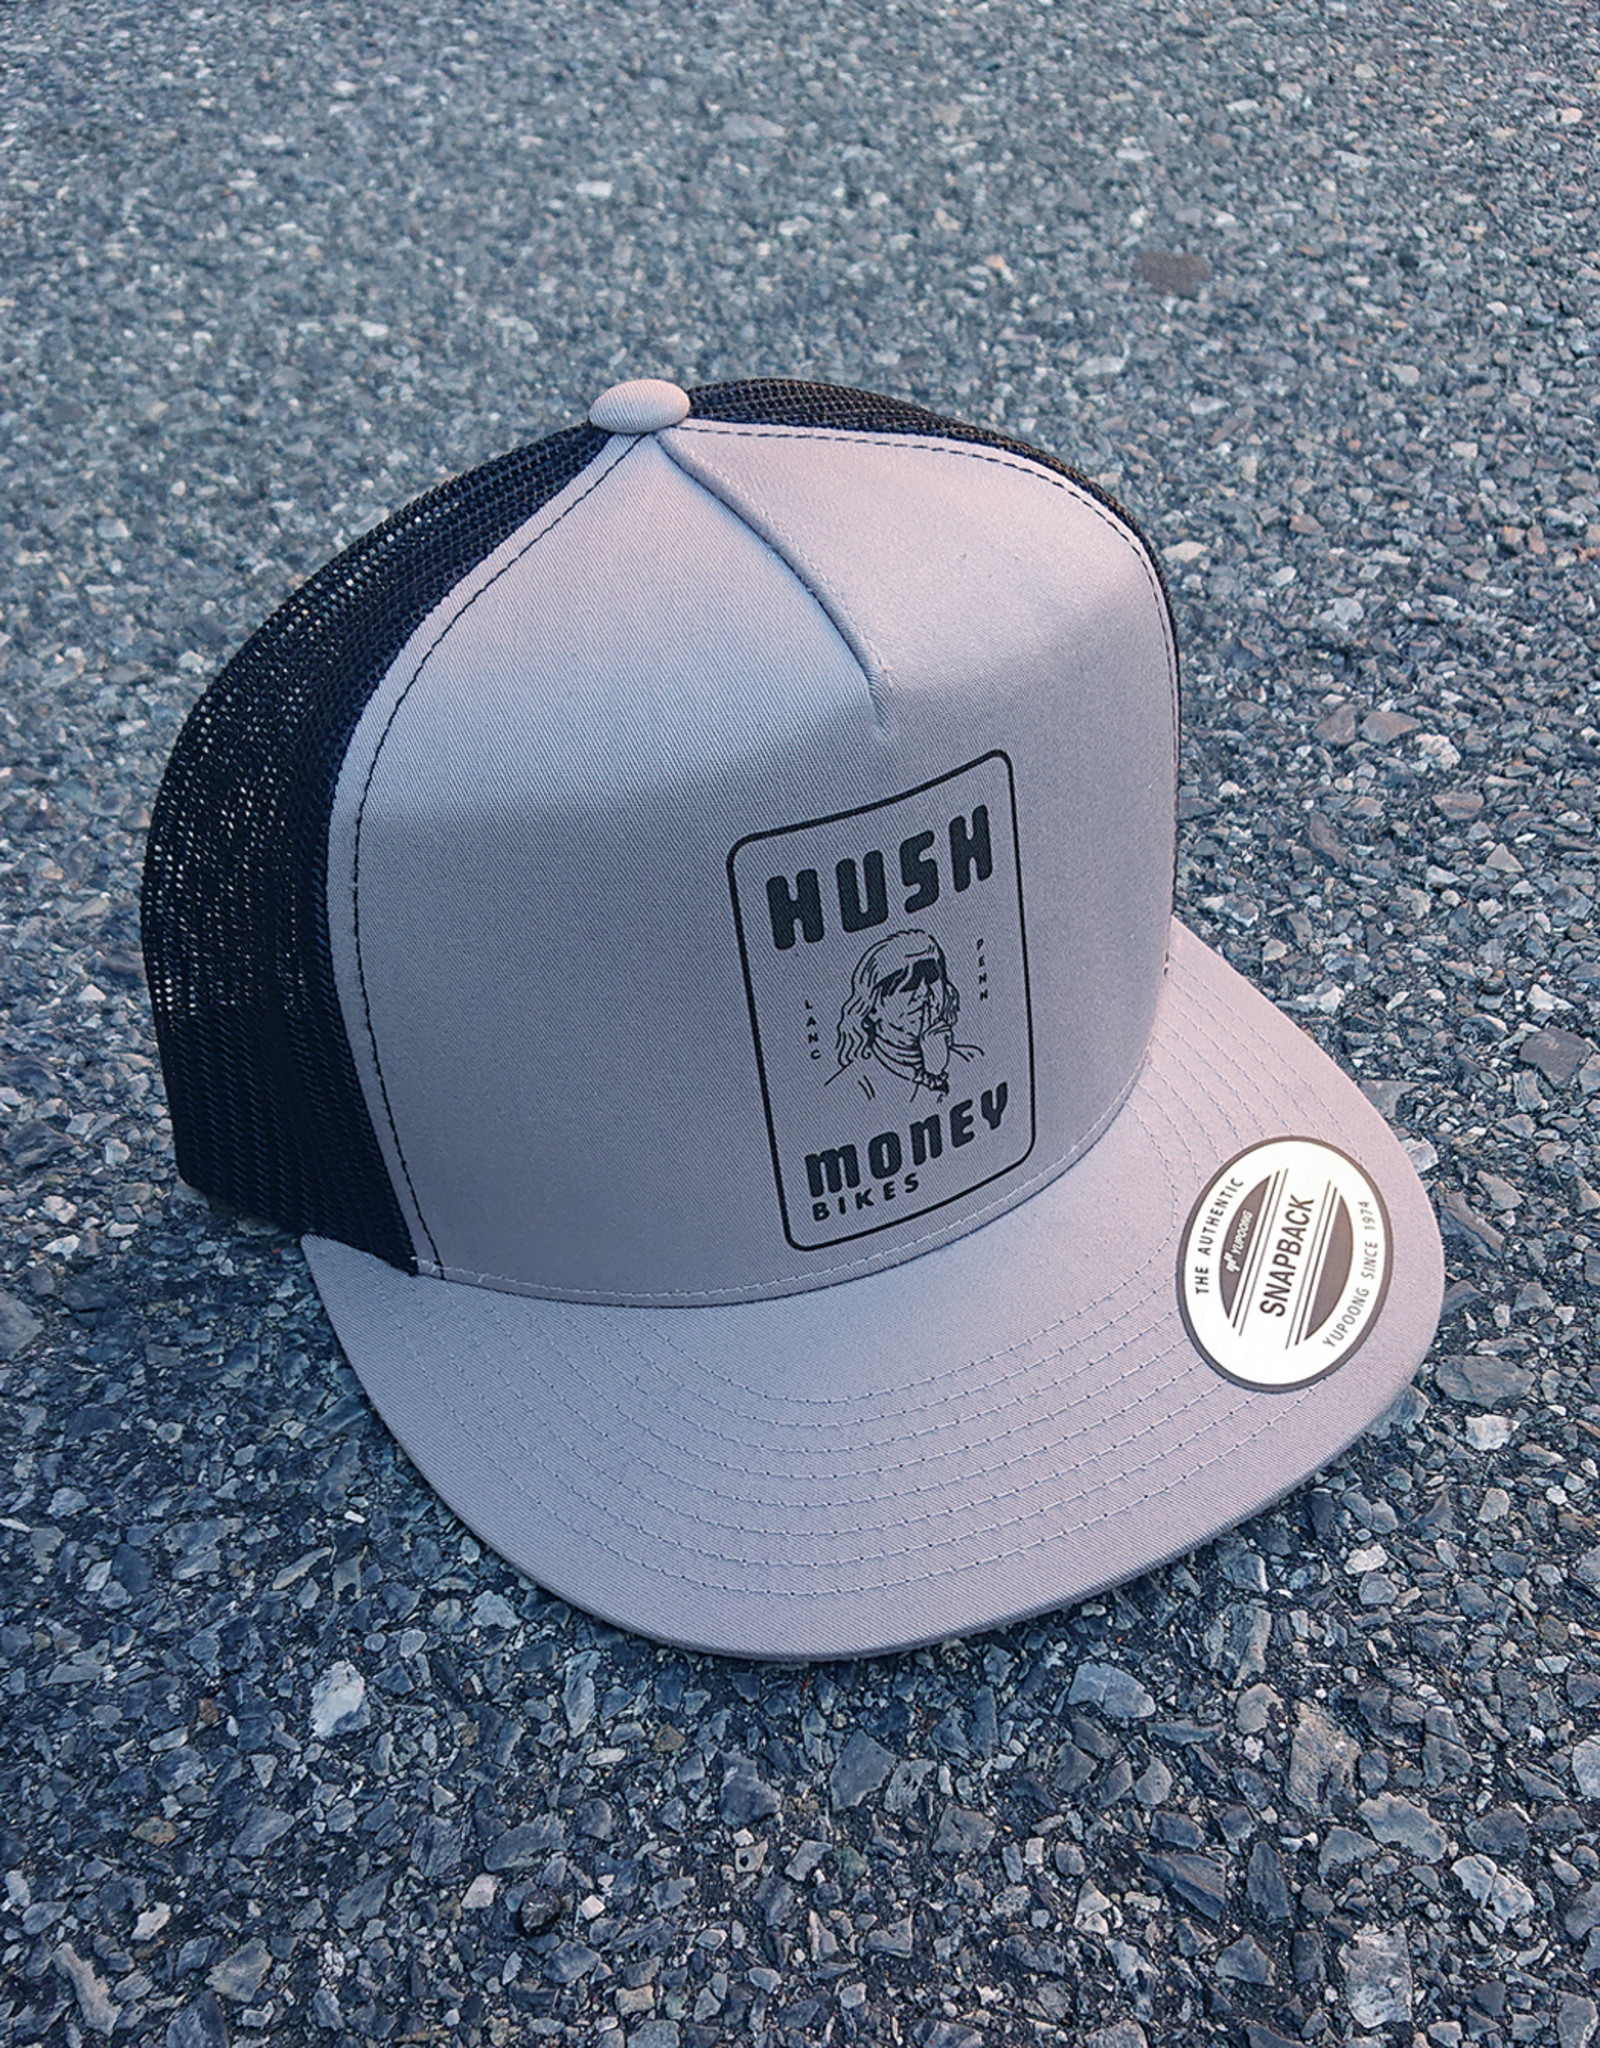 Hush Money Flat Brim Trucker Hat